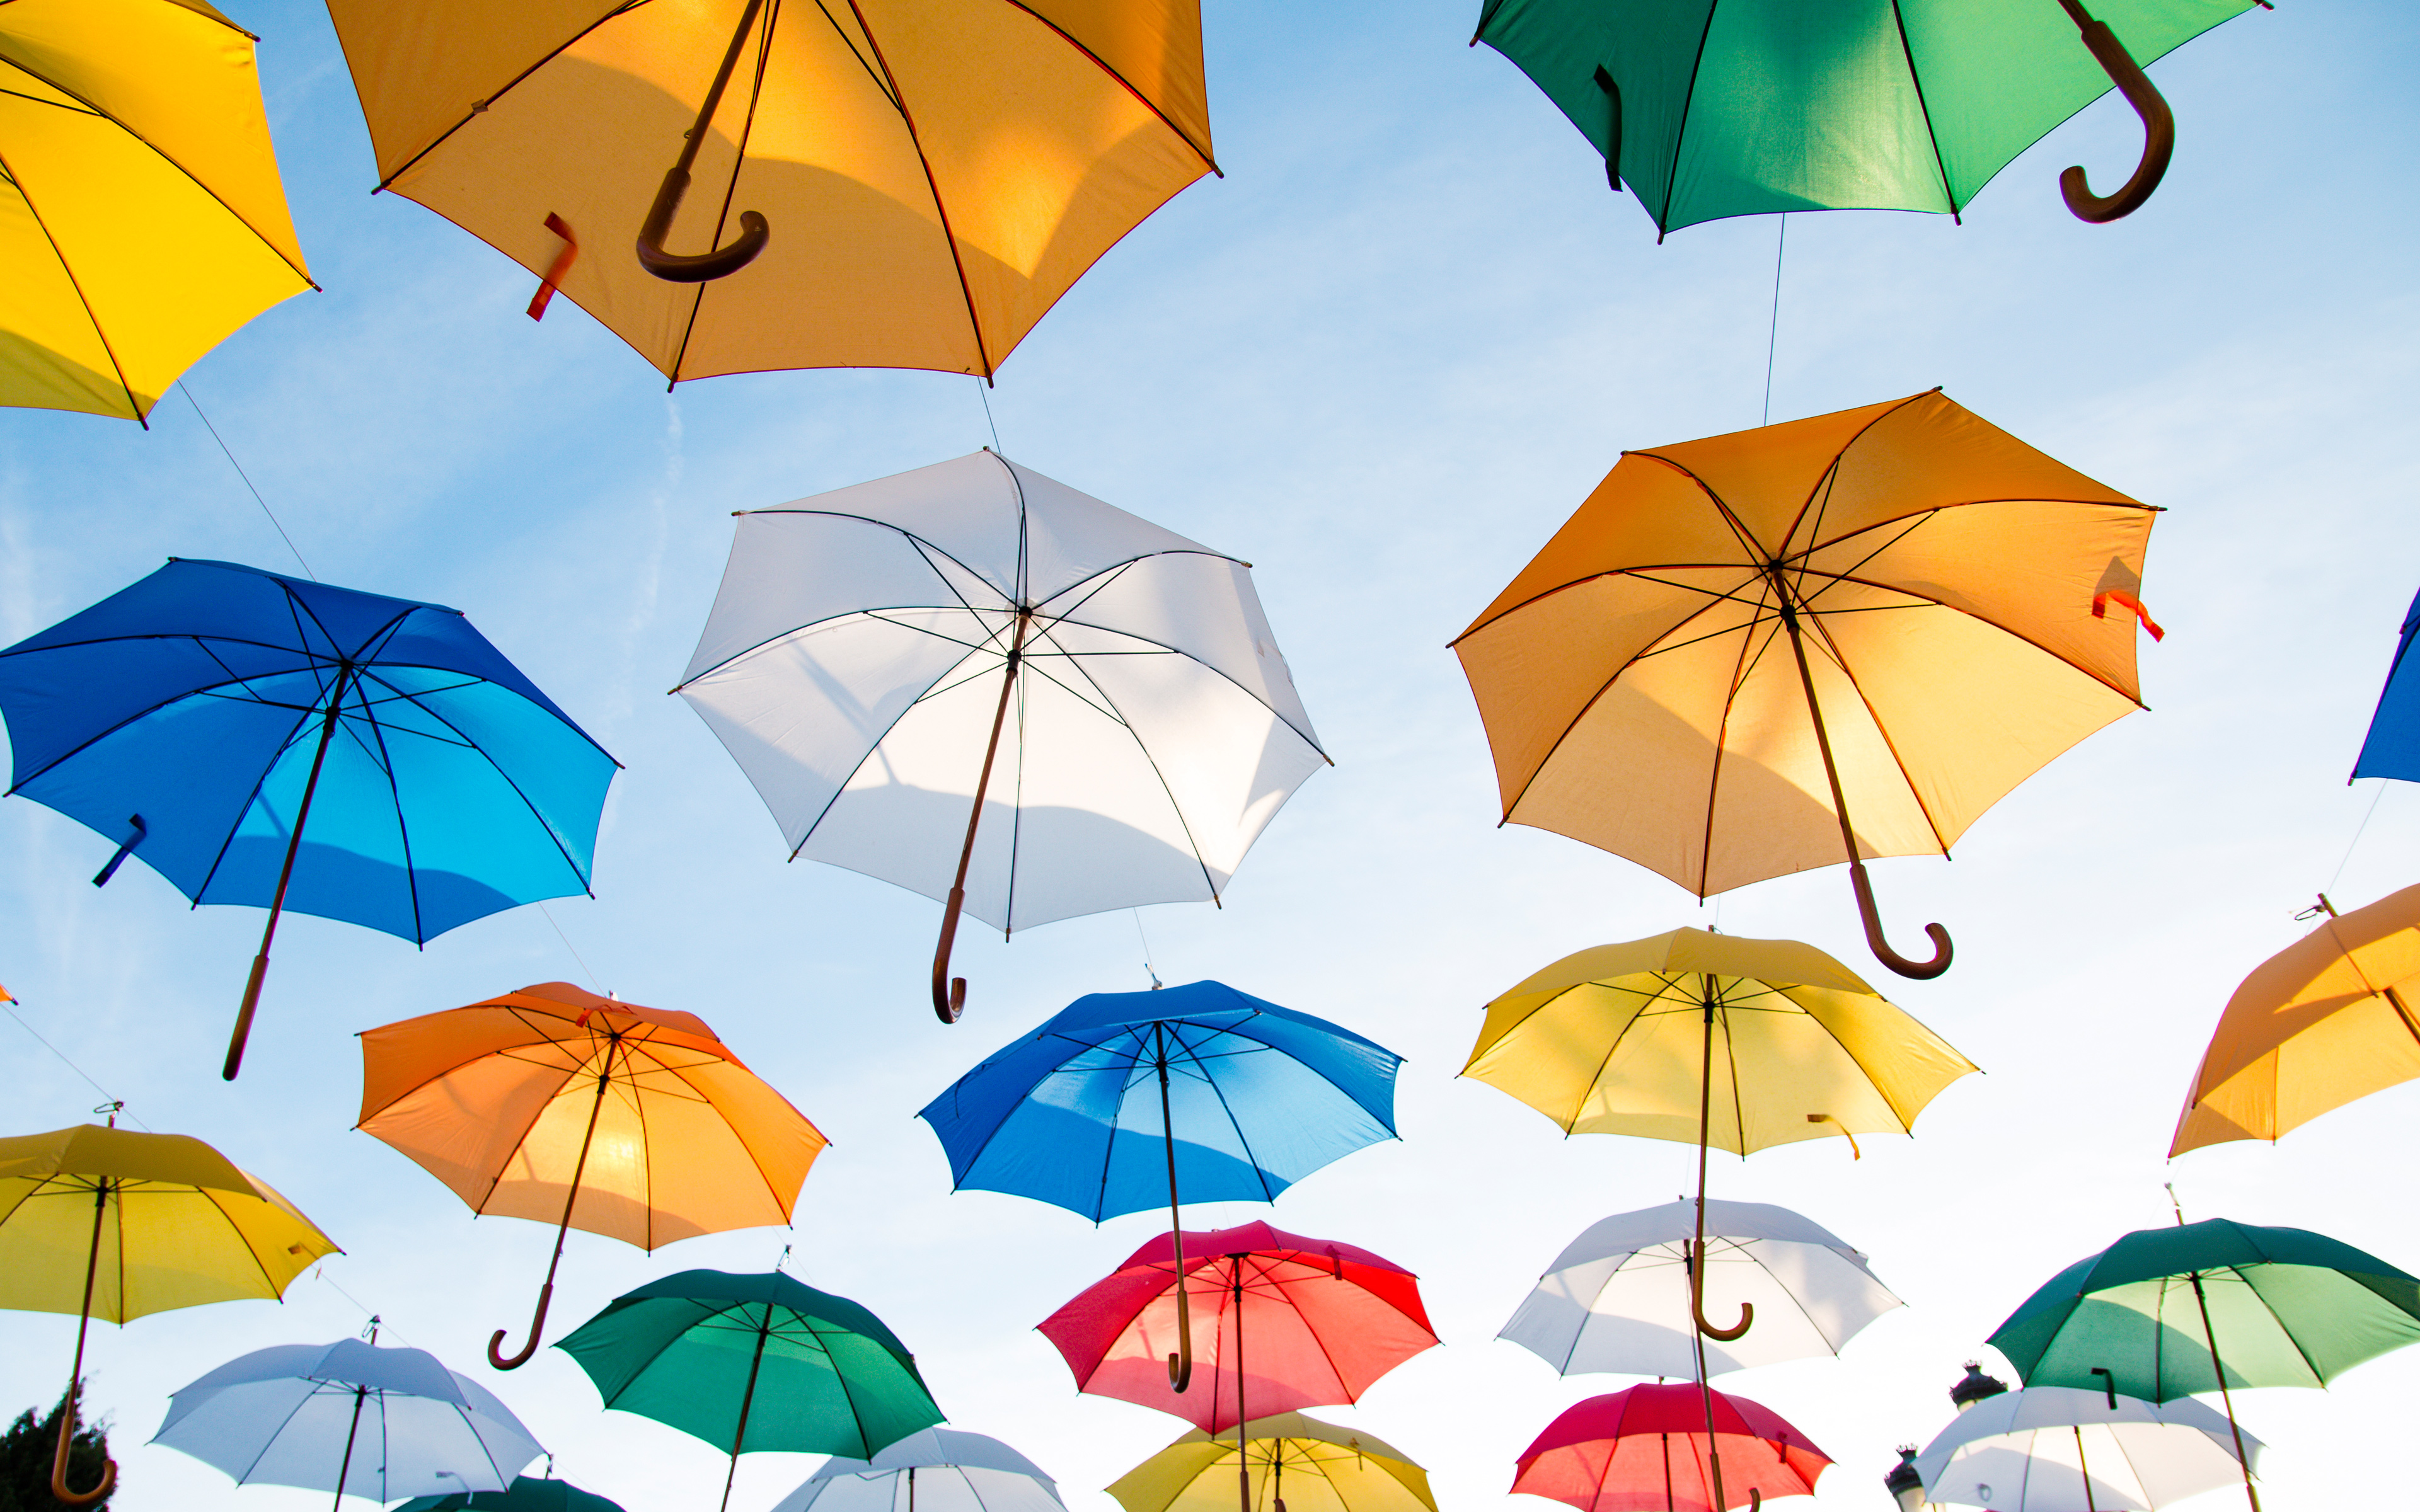 Colorful Umbrellas 4K527117596 - Colorful Umbrellas 4K - Umbrellas, Colorful, Candles